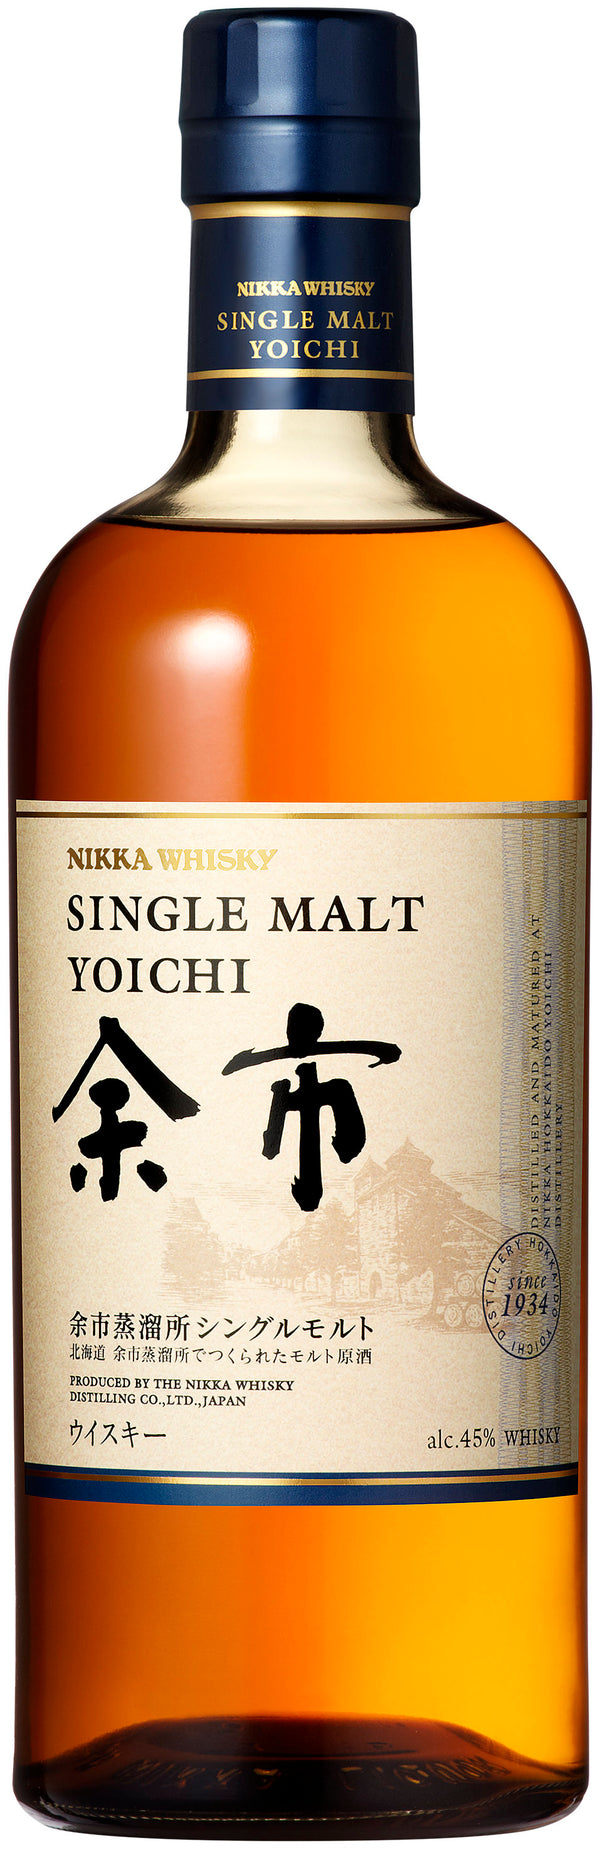 Nikka Single Malt Yoichi - Available at Wooden Cork